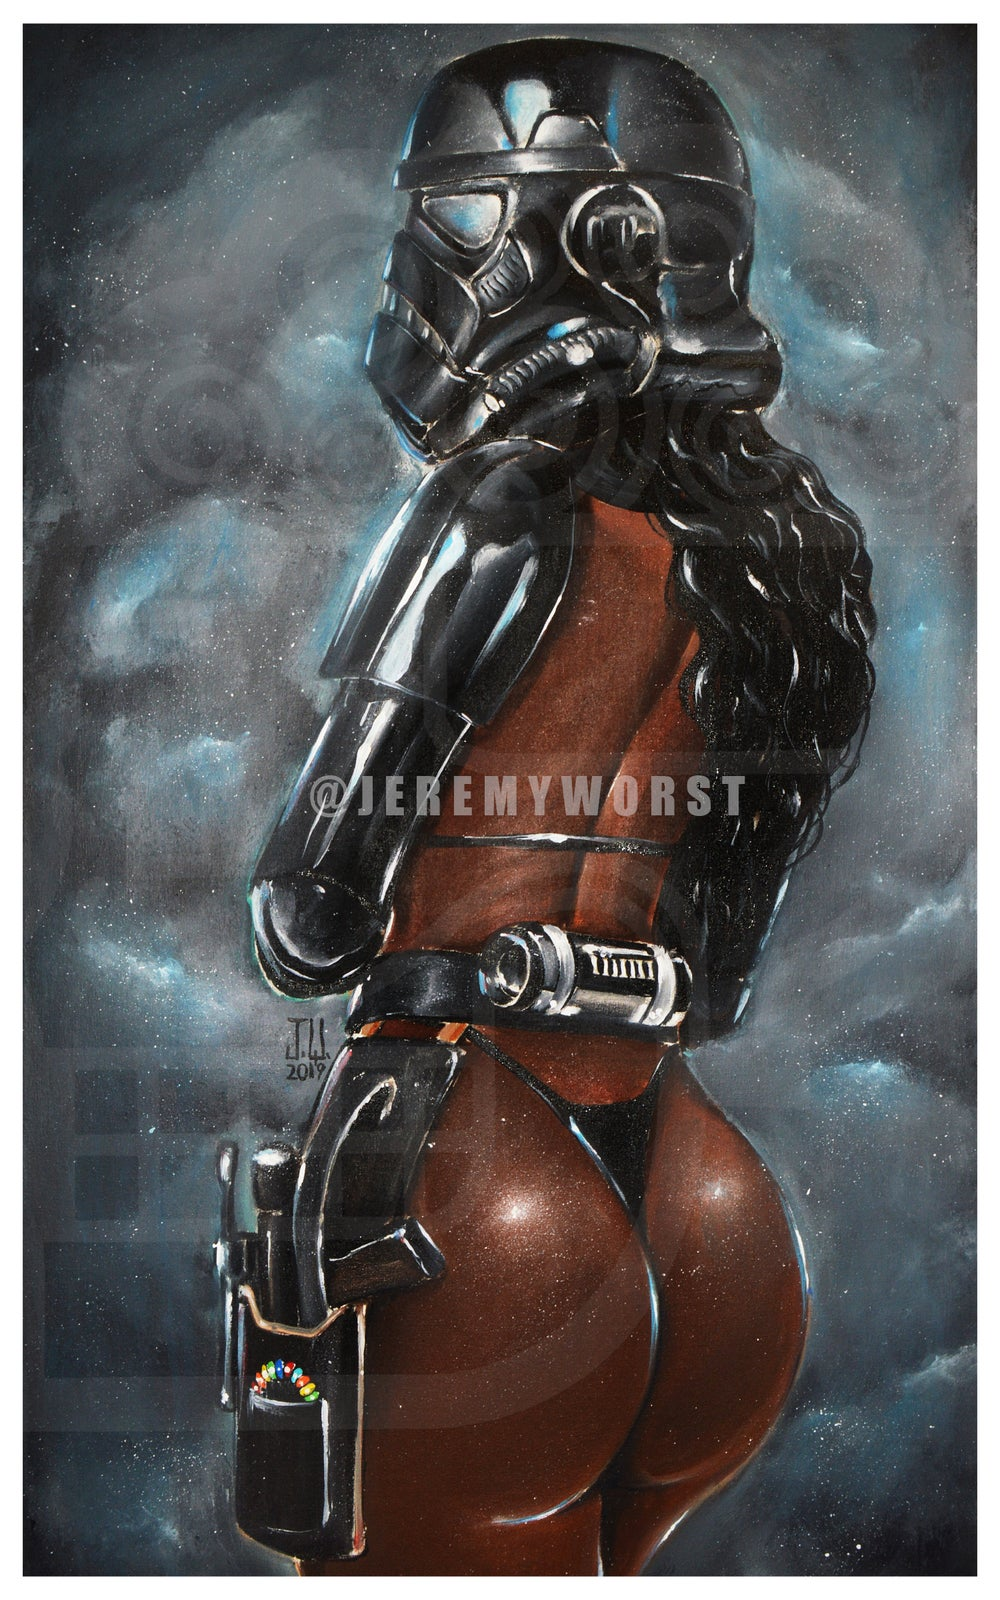 Image of JEREMY WORST Shadow Trooper Star Wars Storm Trooper sexy African American girl blaster Smokey sky